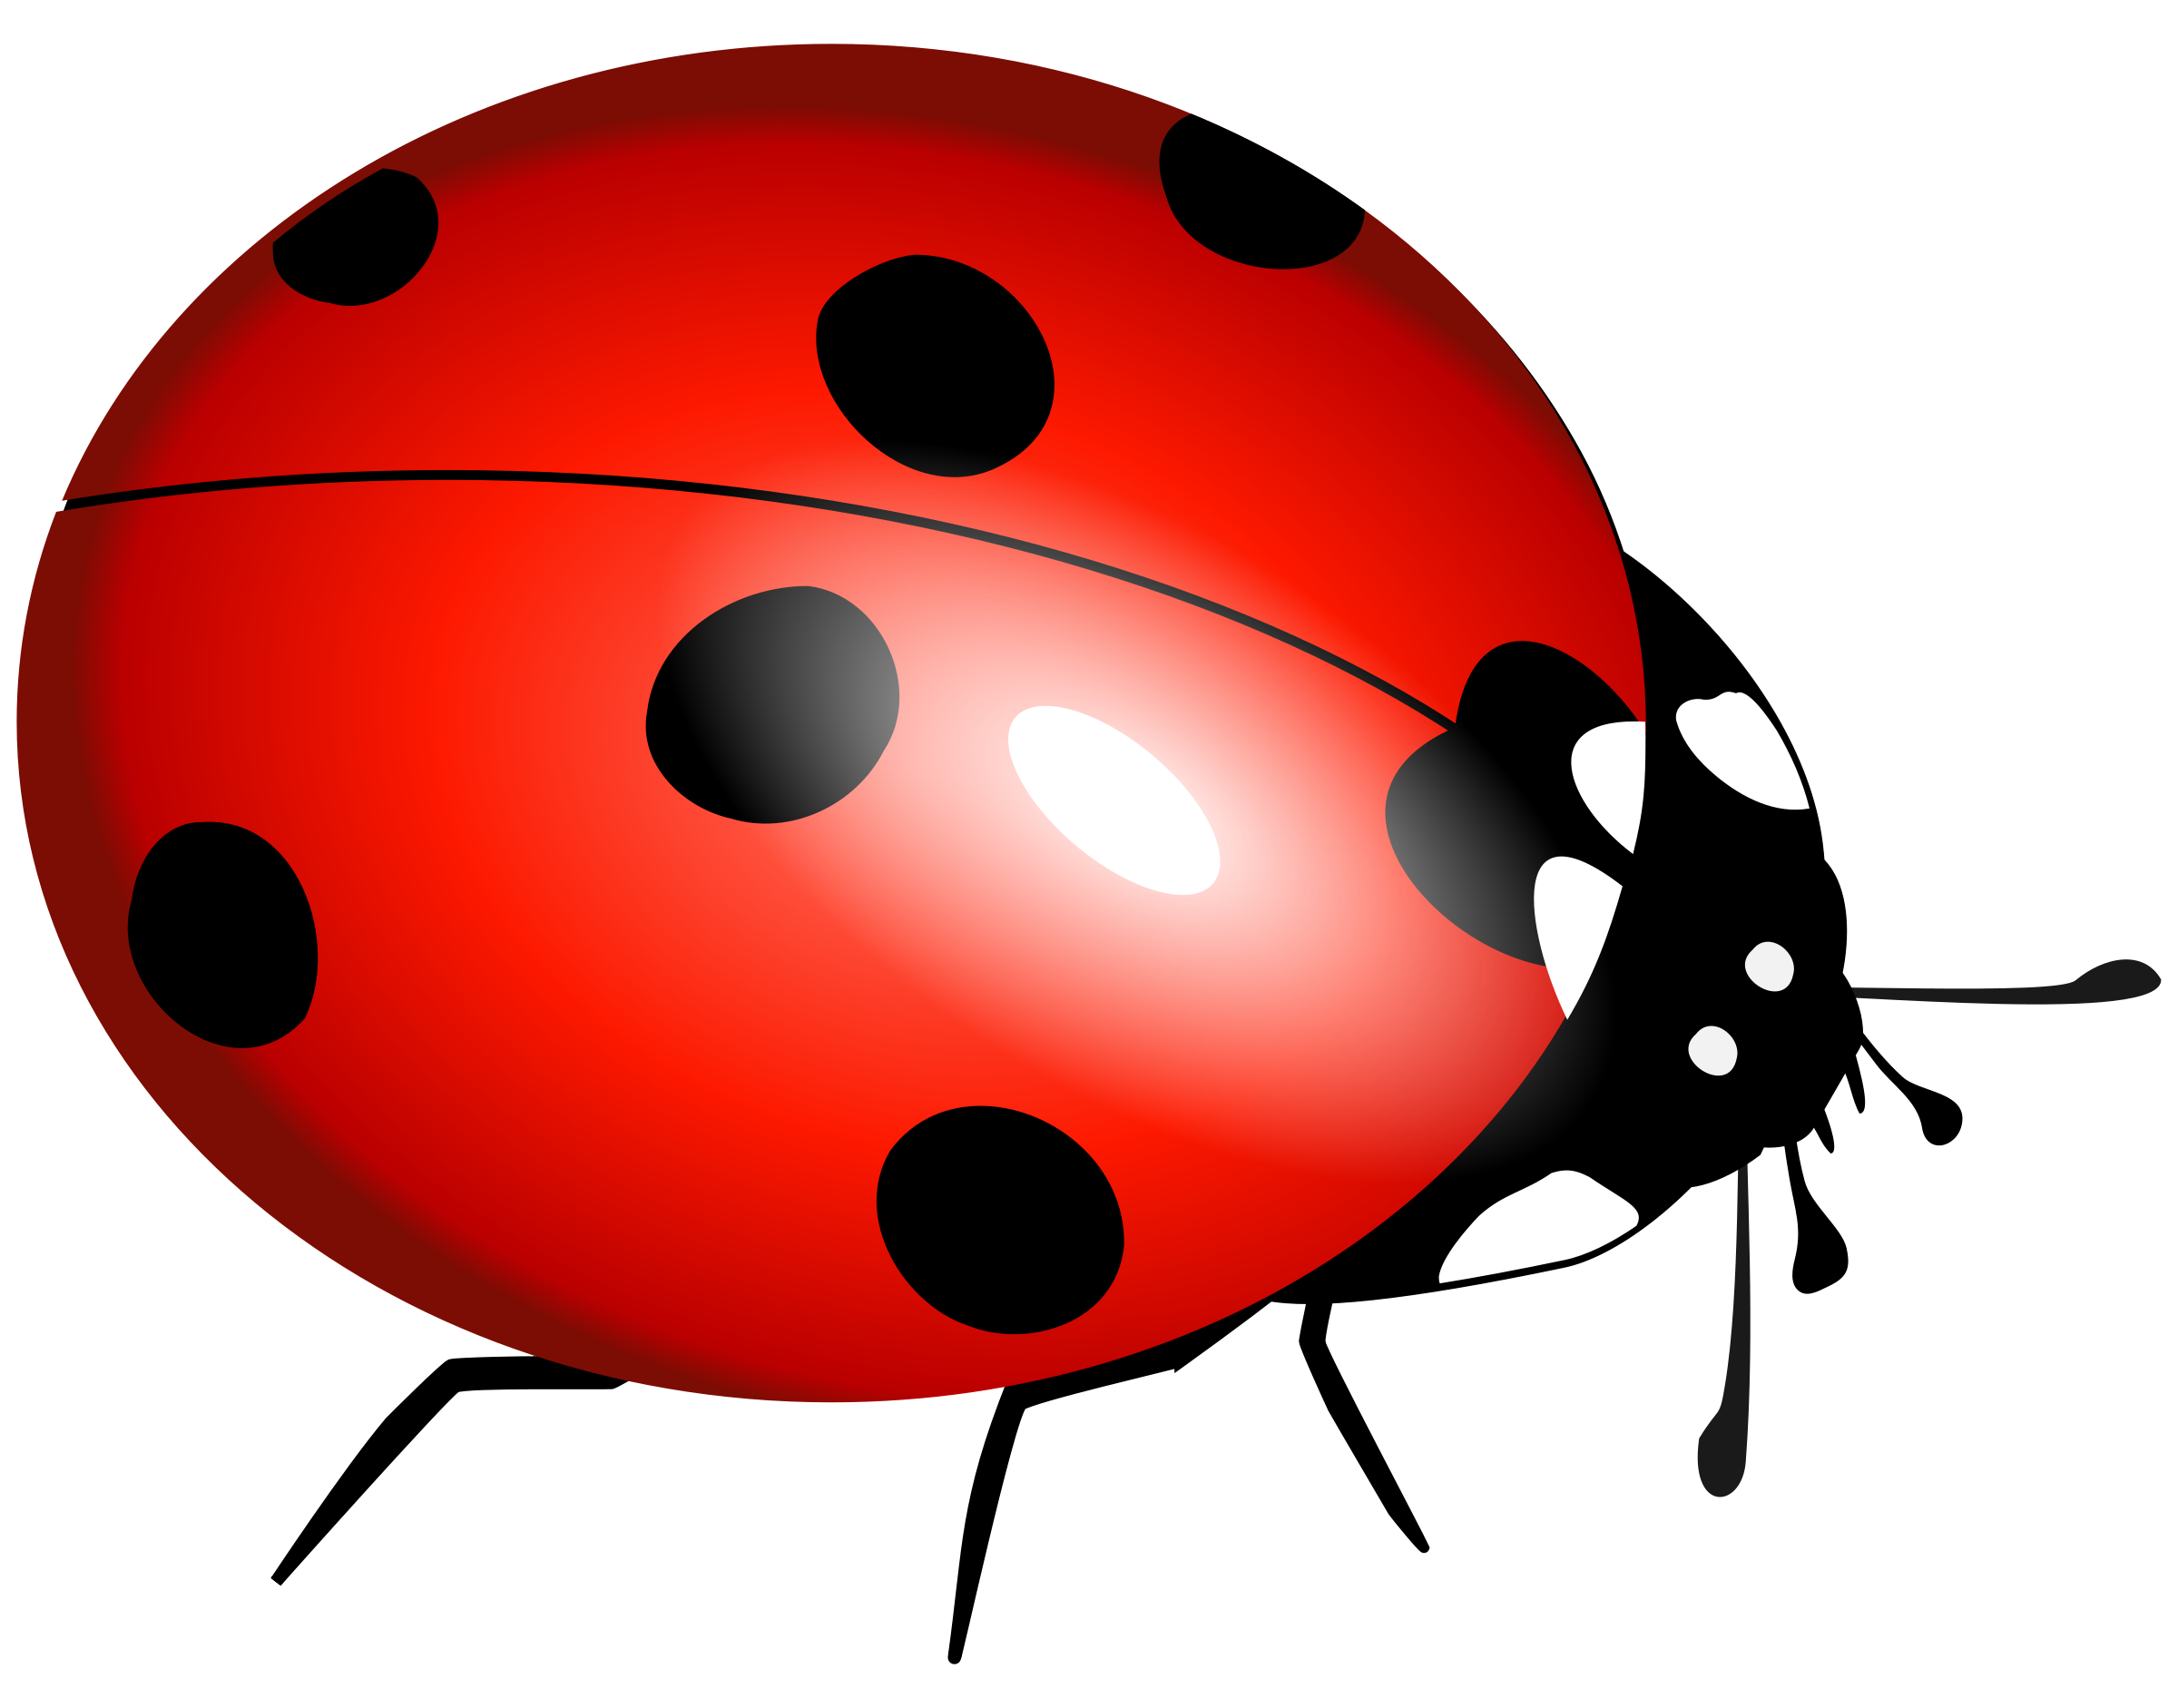 Ladybug isolated stock photo. Tomatoes clipart one